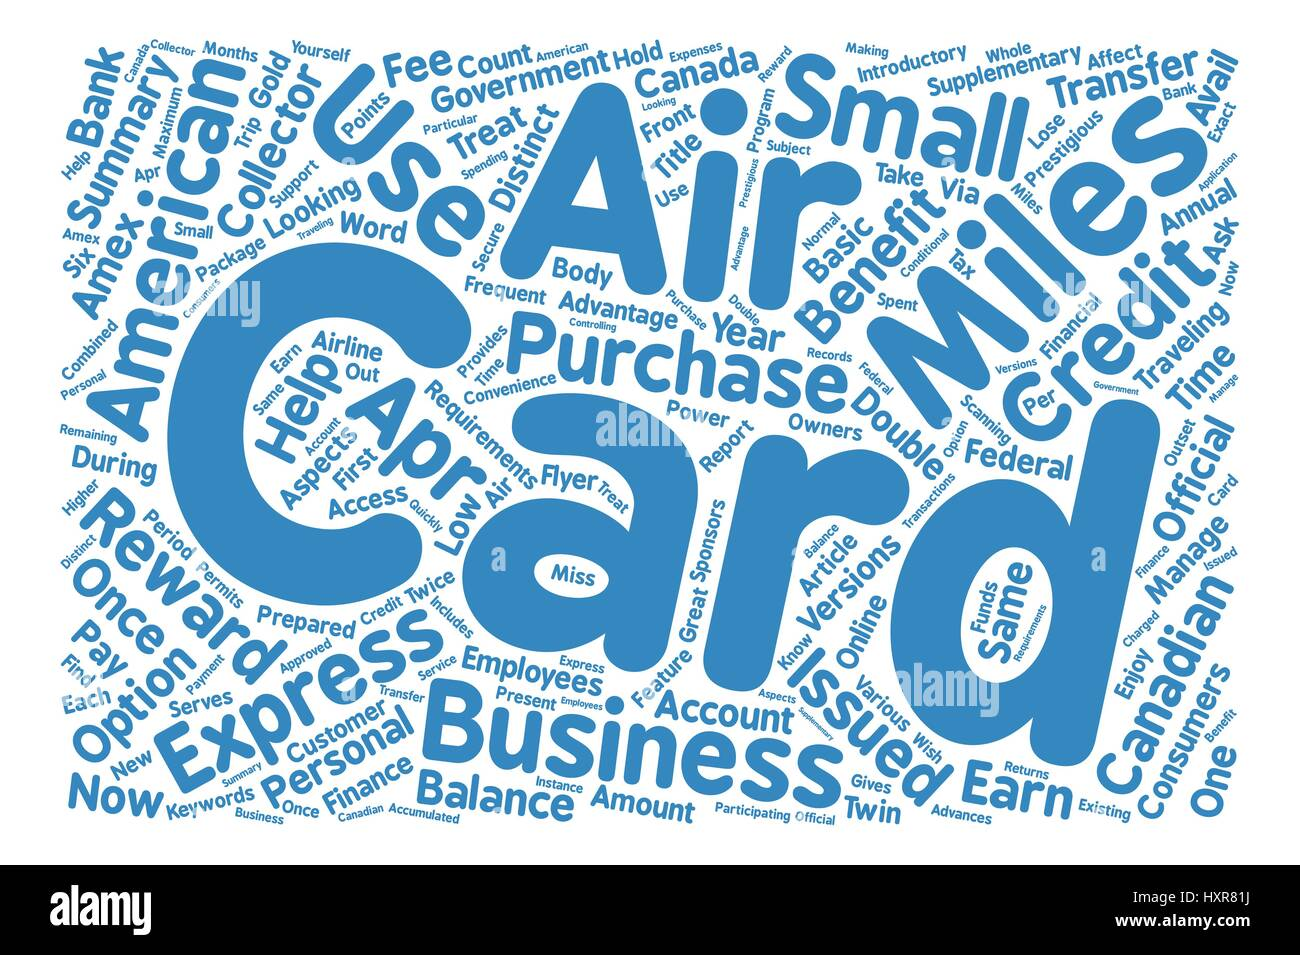 American express air miles credit card for business text background american express air miles credit card for business text background word cloud concept colourmoves